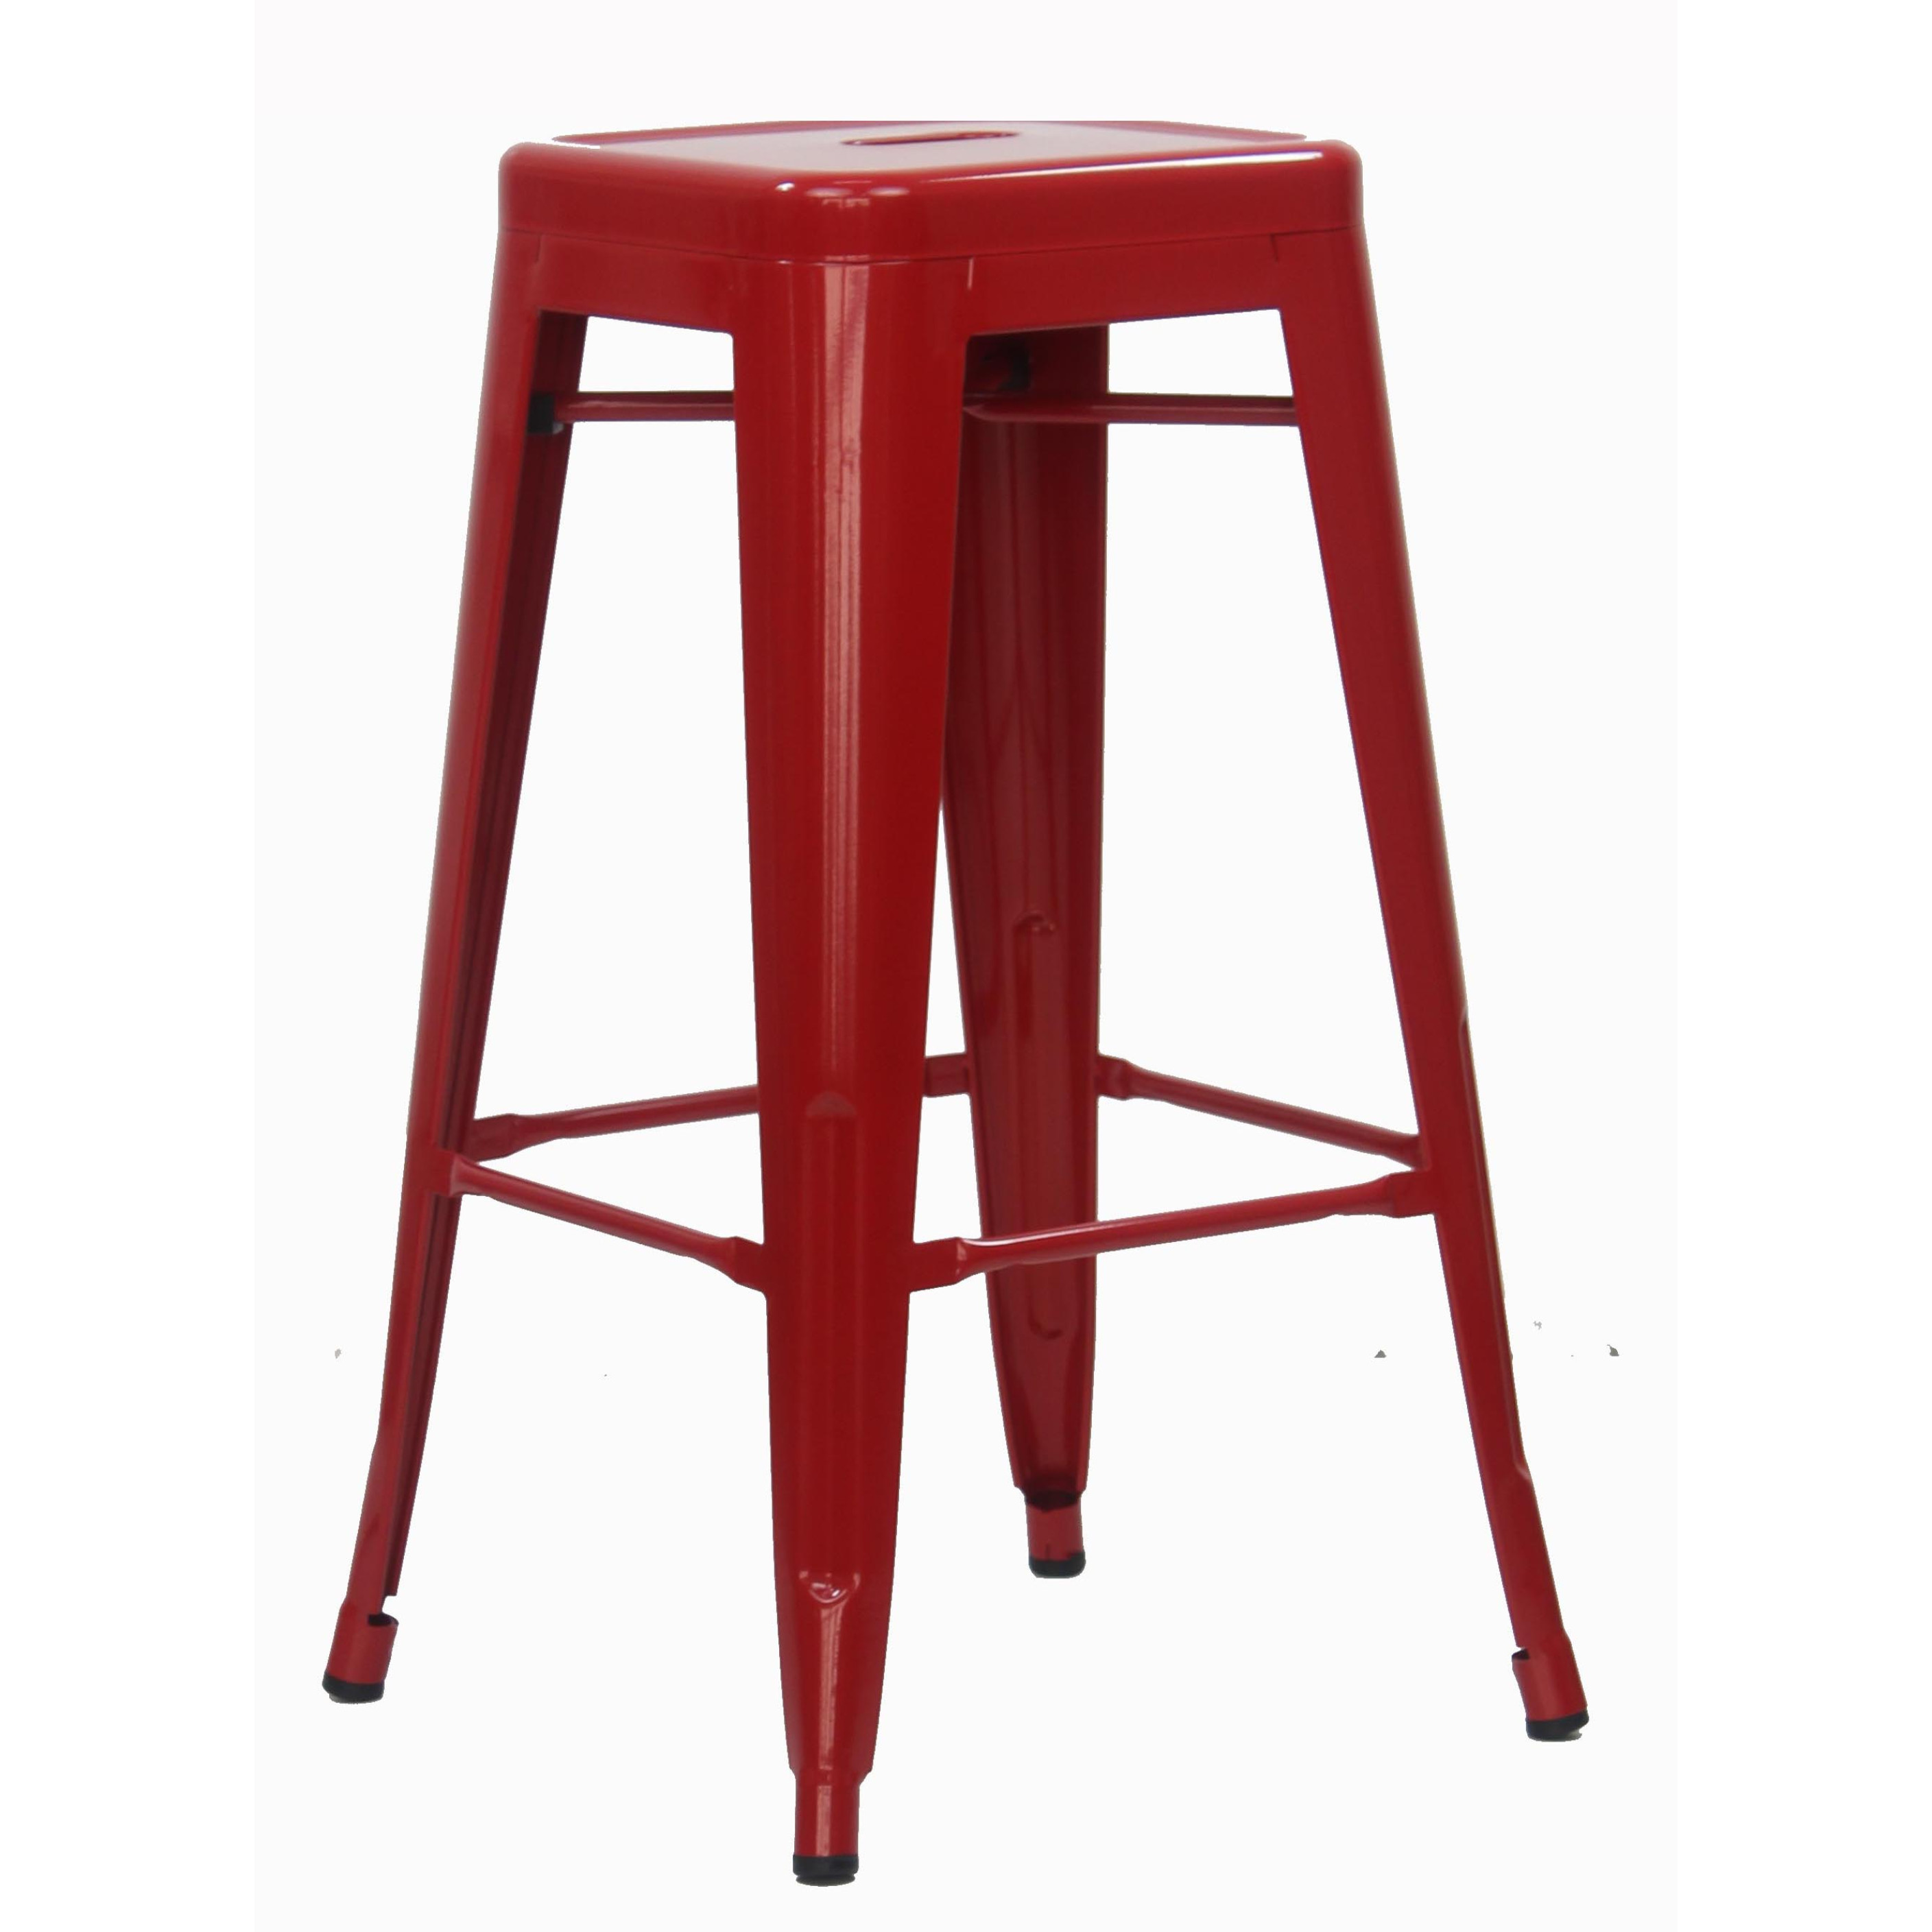 Retro Metal High Stool Red Bar Stools Living Room Furniture Furniture Home D Cor Fortytwo